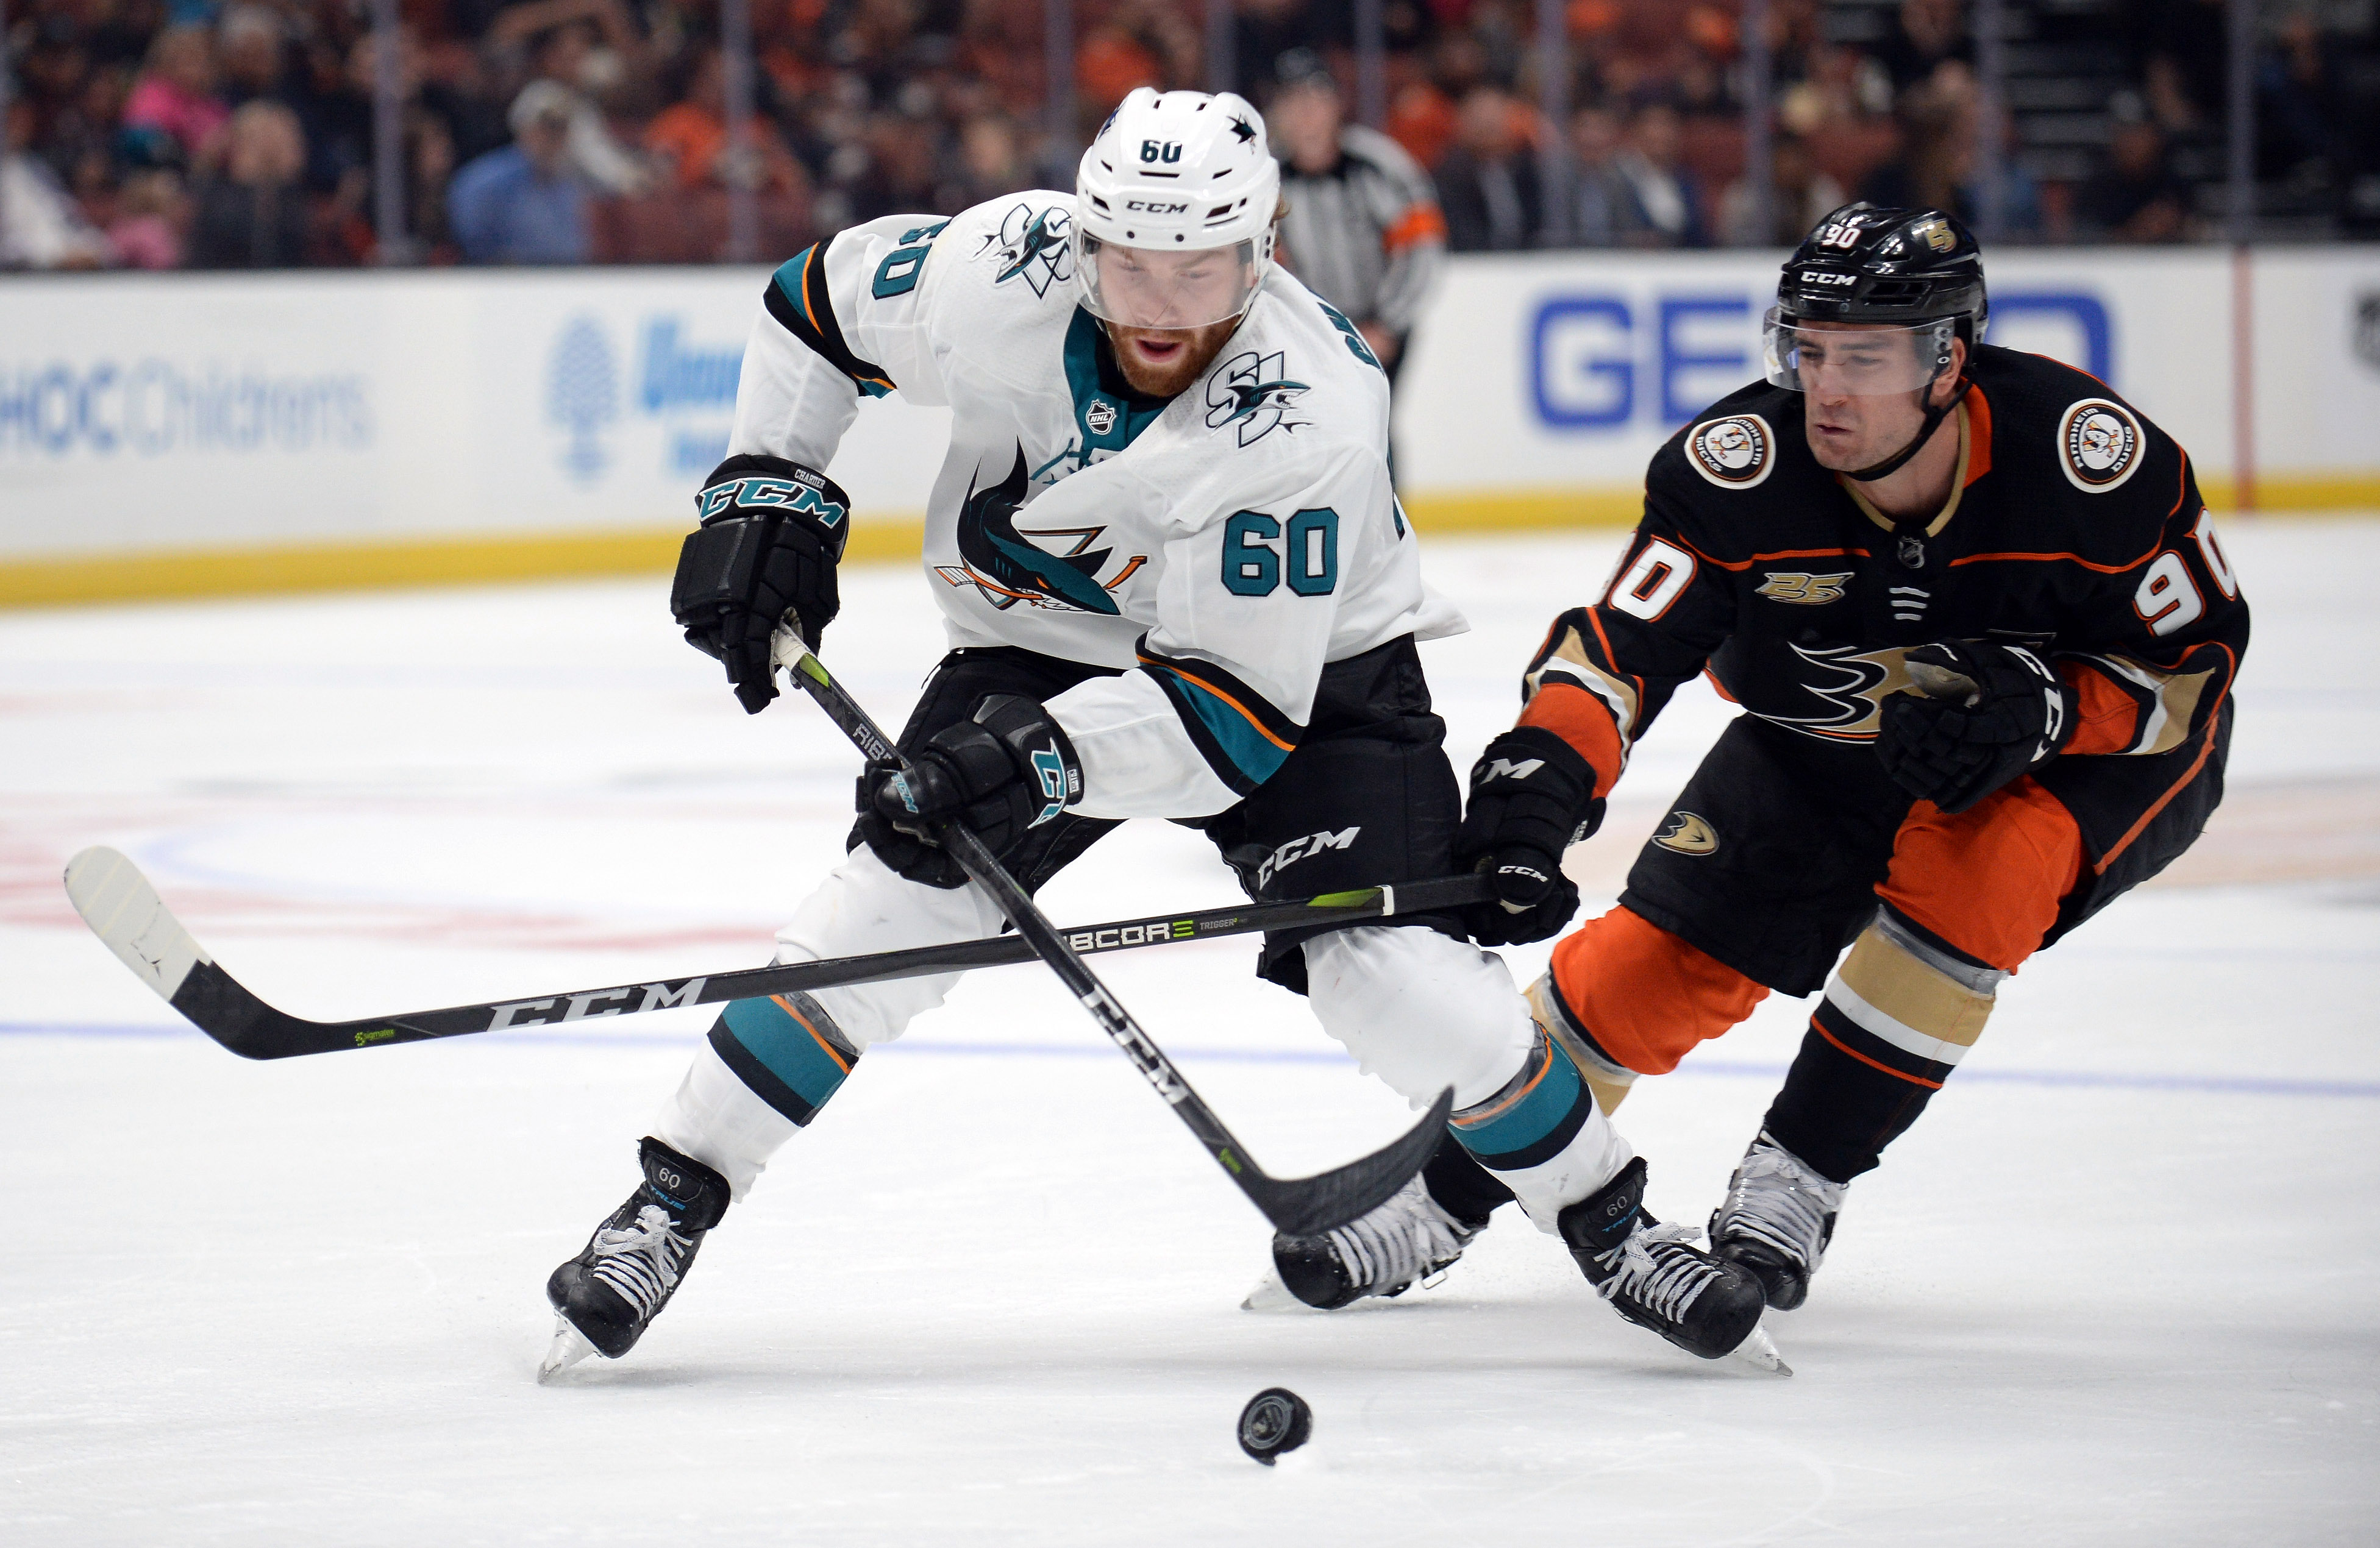 September 20, 2018; Anaheim, CA, USA; San Jose Sharks center Rourke Chartier (60) moves the puck ahead of Anaheim Ducks left wing Giovanni Fiore (90) during the second period at Honda Center.